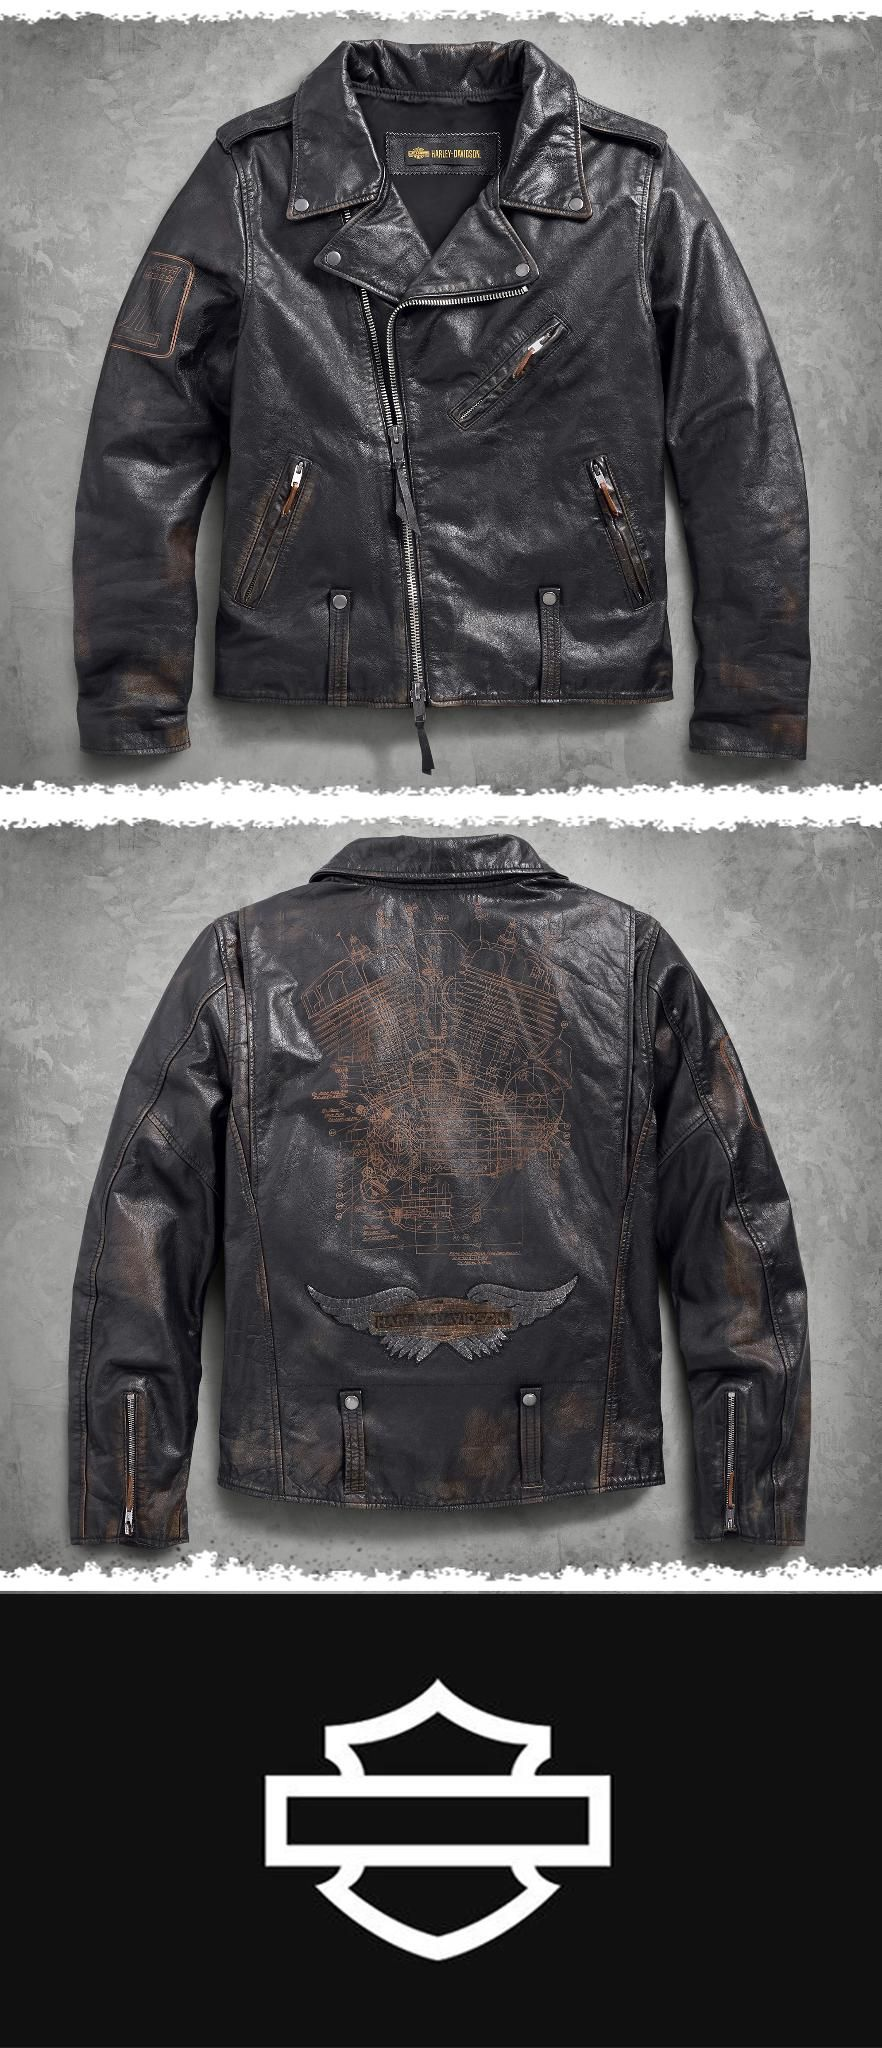 Master Distressed Leather Biker Jacket Harley Davidson Street